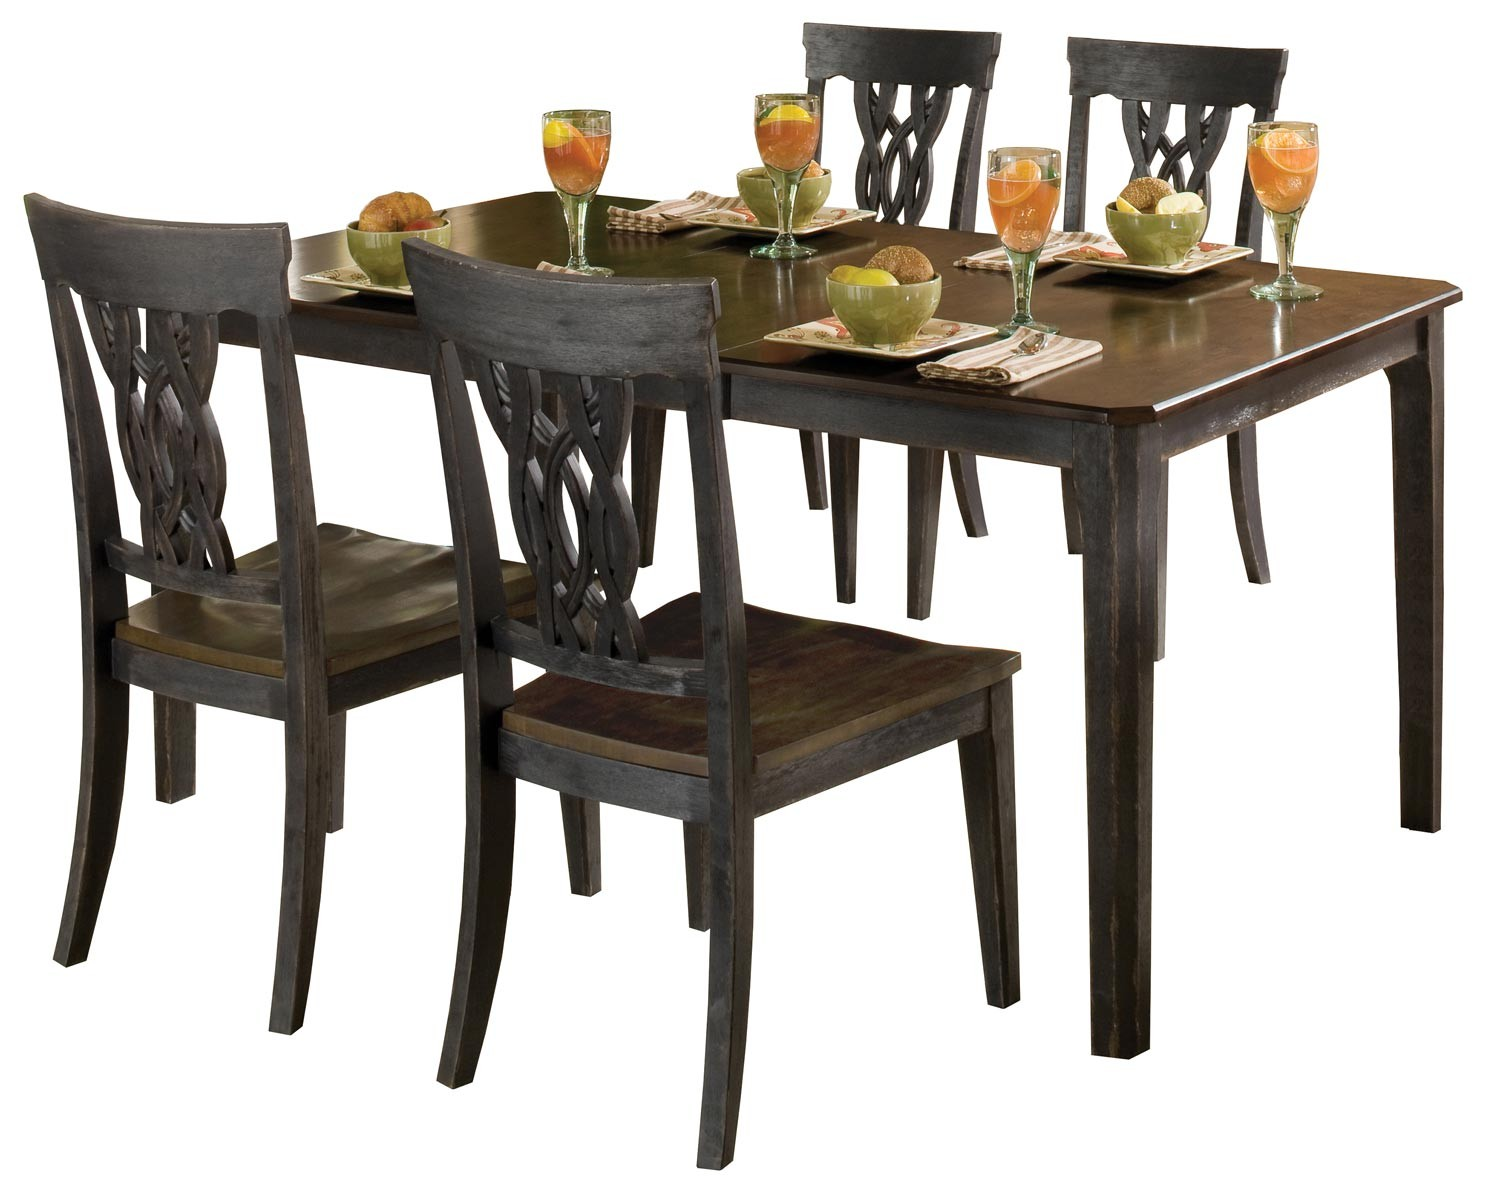 Hillsdale Lafayette 5 PC Dining Set - Black Gray with Walnut